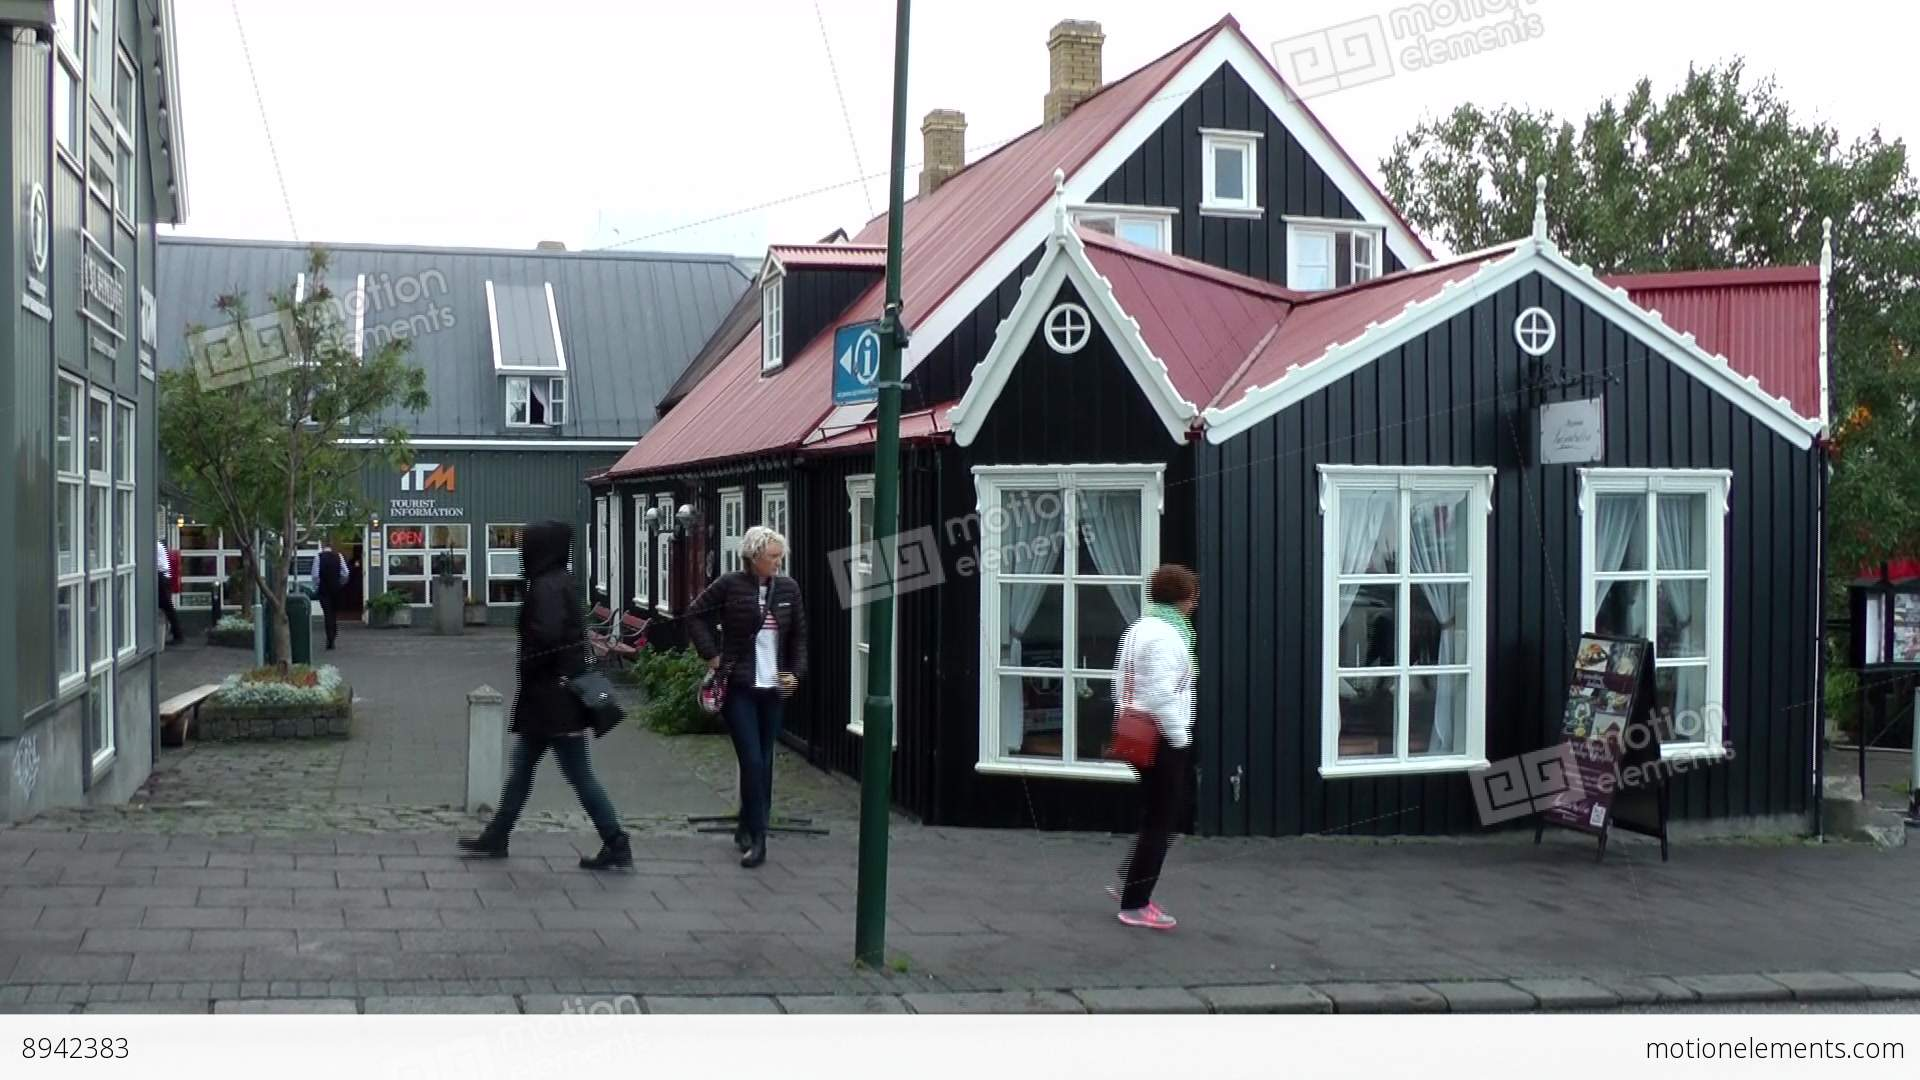 iceland reykjavik 073 typical scandinavian wooden houses in city iceland reykjavik 073 typical scandinavian wooden houses stock video footage